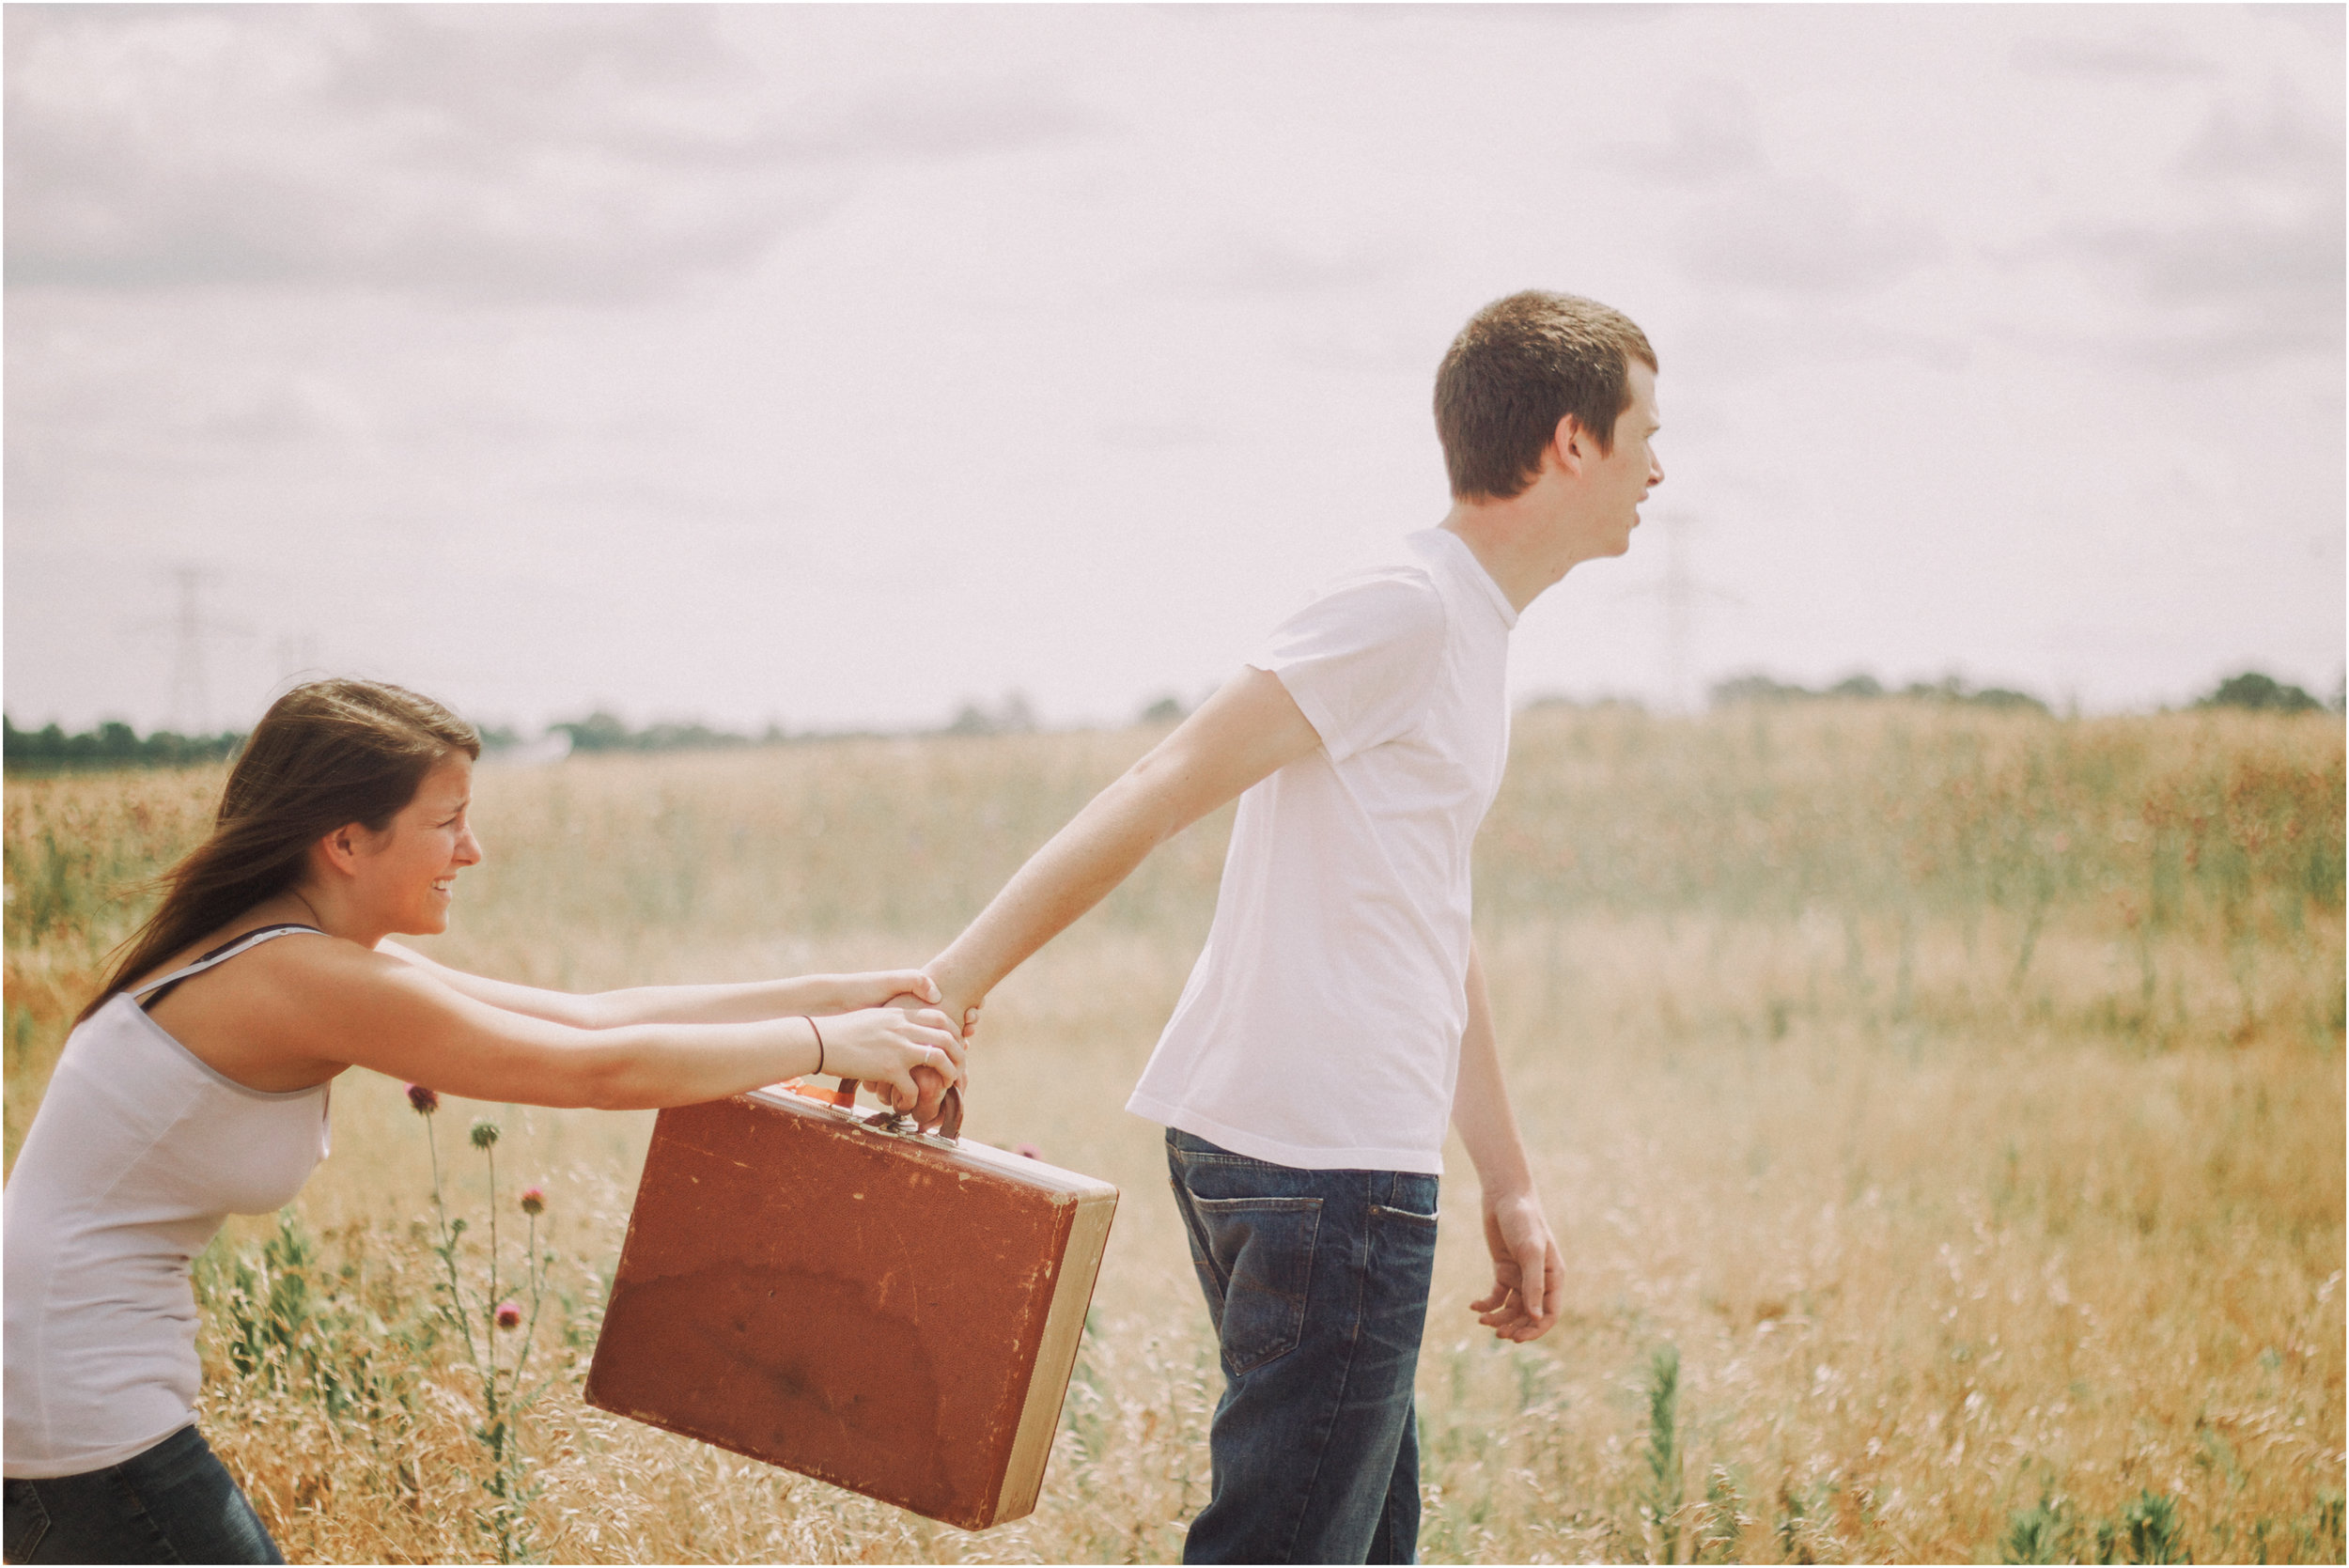 Green Bay Intimate Engagement Session 9.jpg